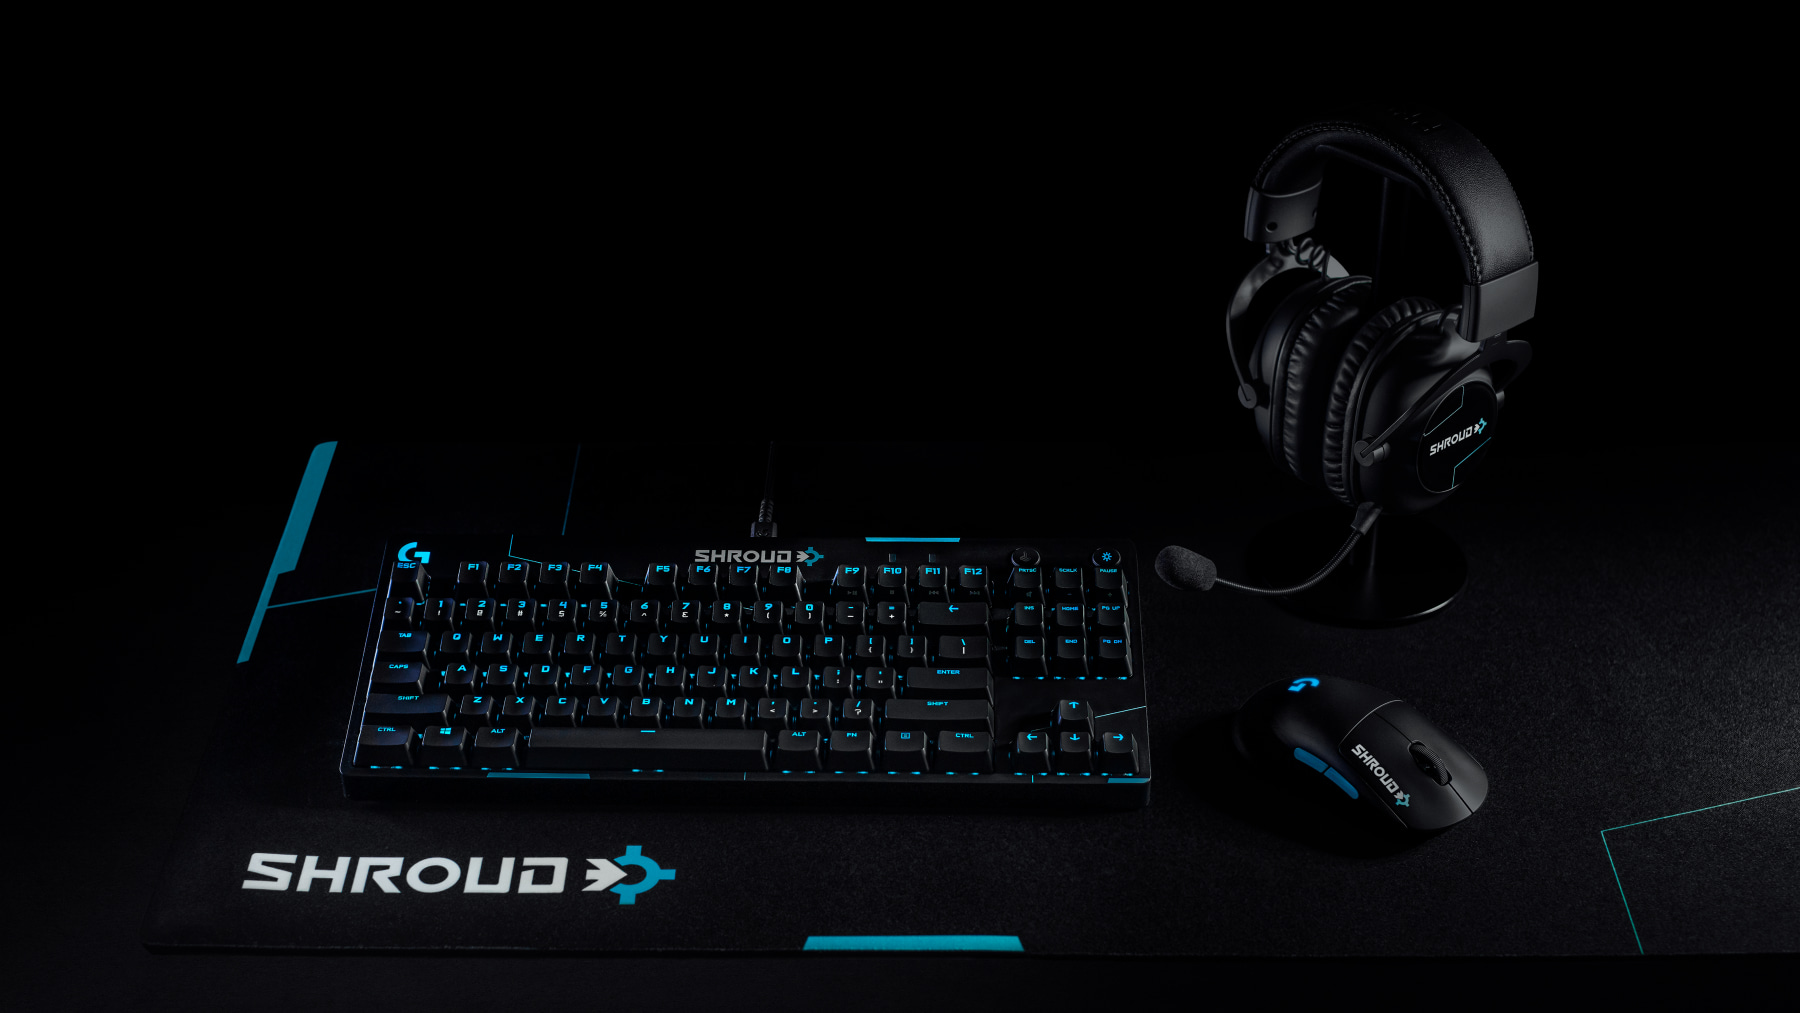 THE OFFICIAL GAMING GEAR OF SHROUD